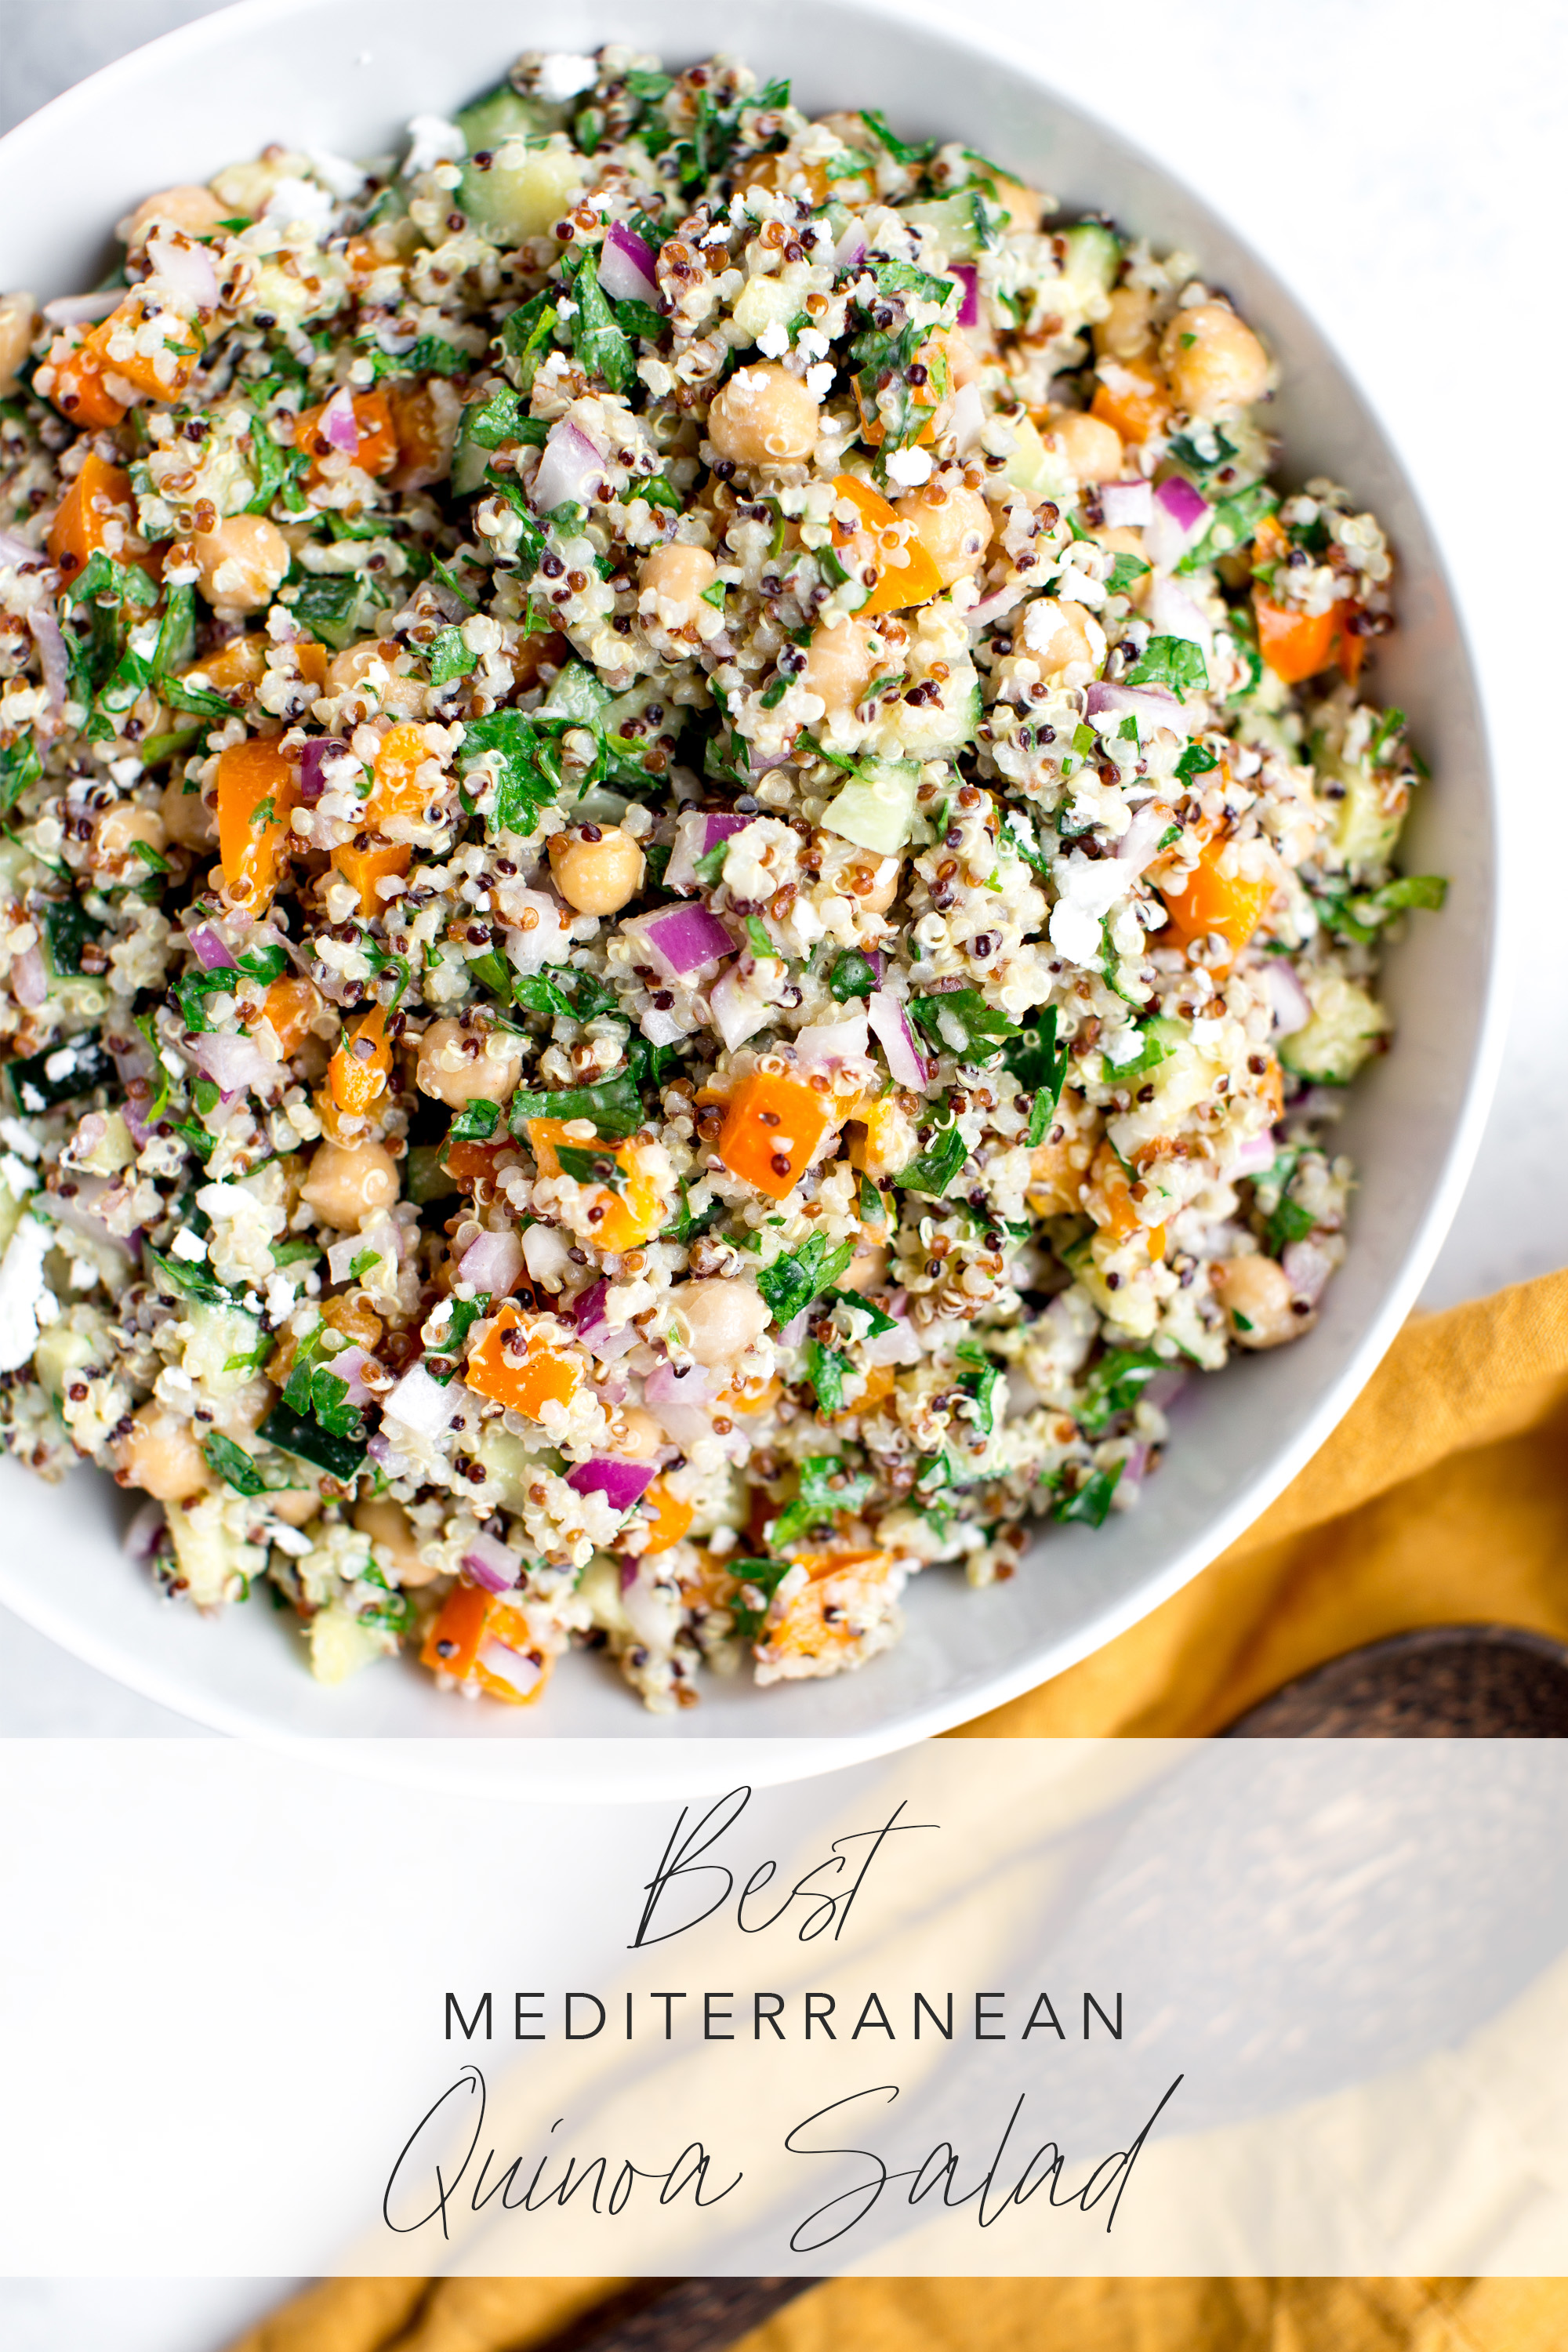 Quinoa salad made with bell pepper, quinoa, parsley, red pepper, cucumber and feta dressing image has recipe title